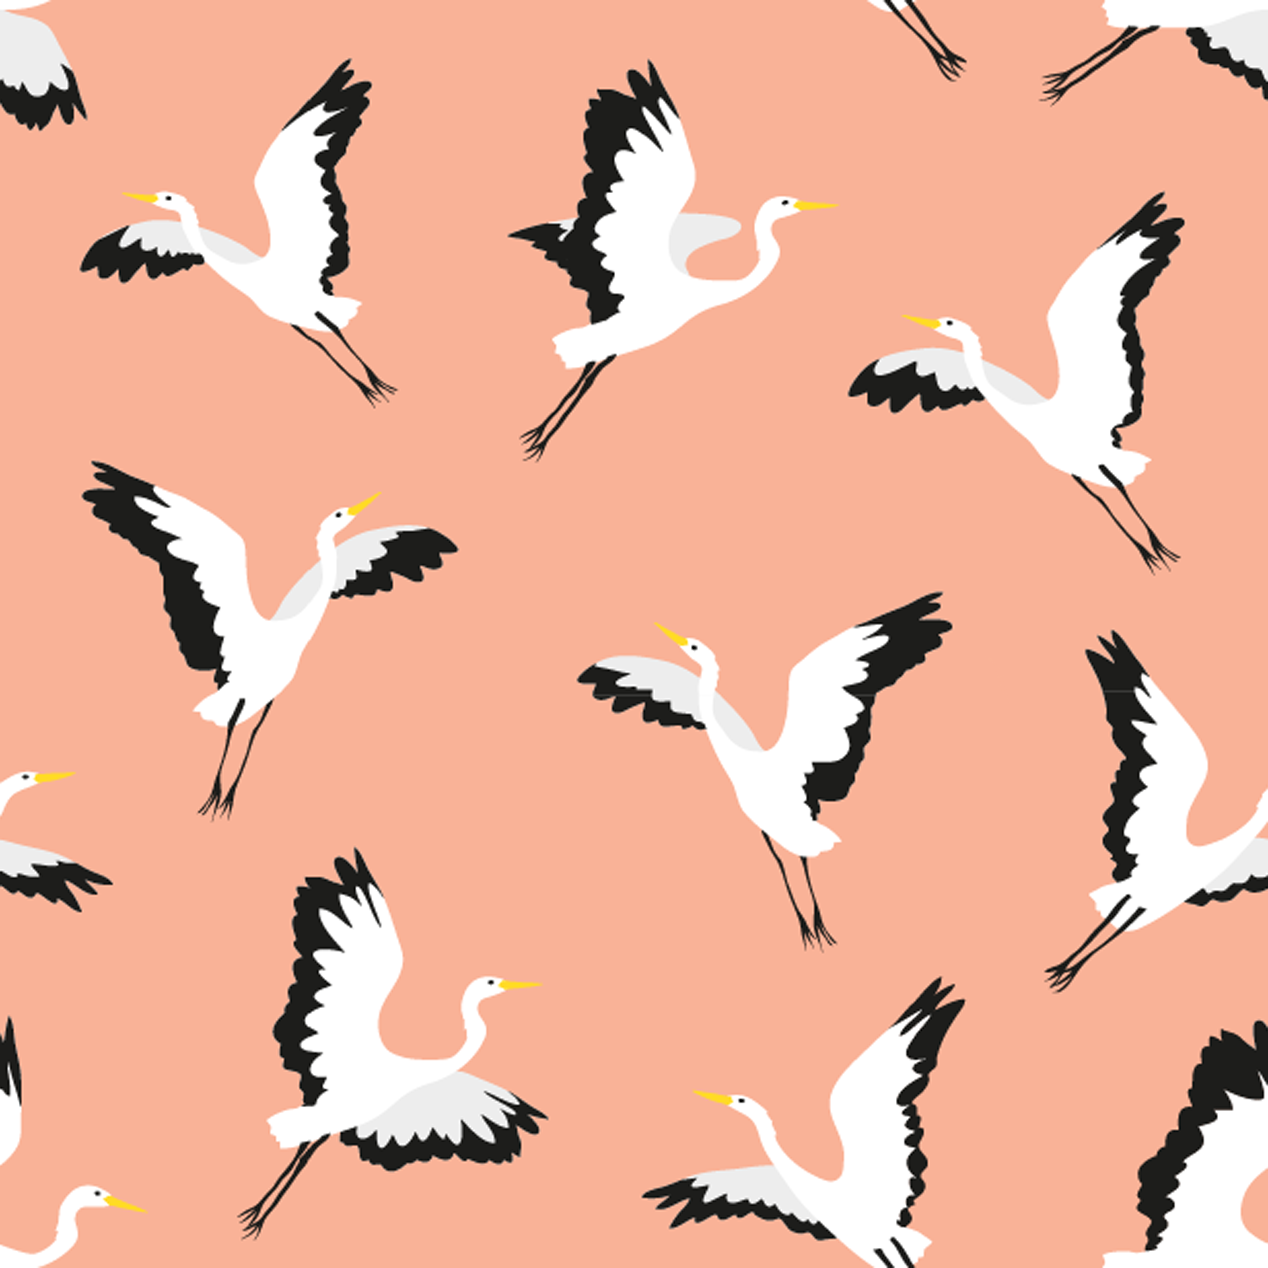 melissa-boardman-flying-egret-pattern.png